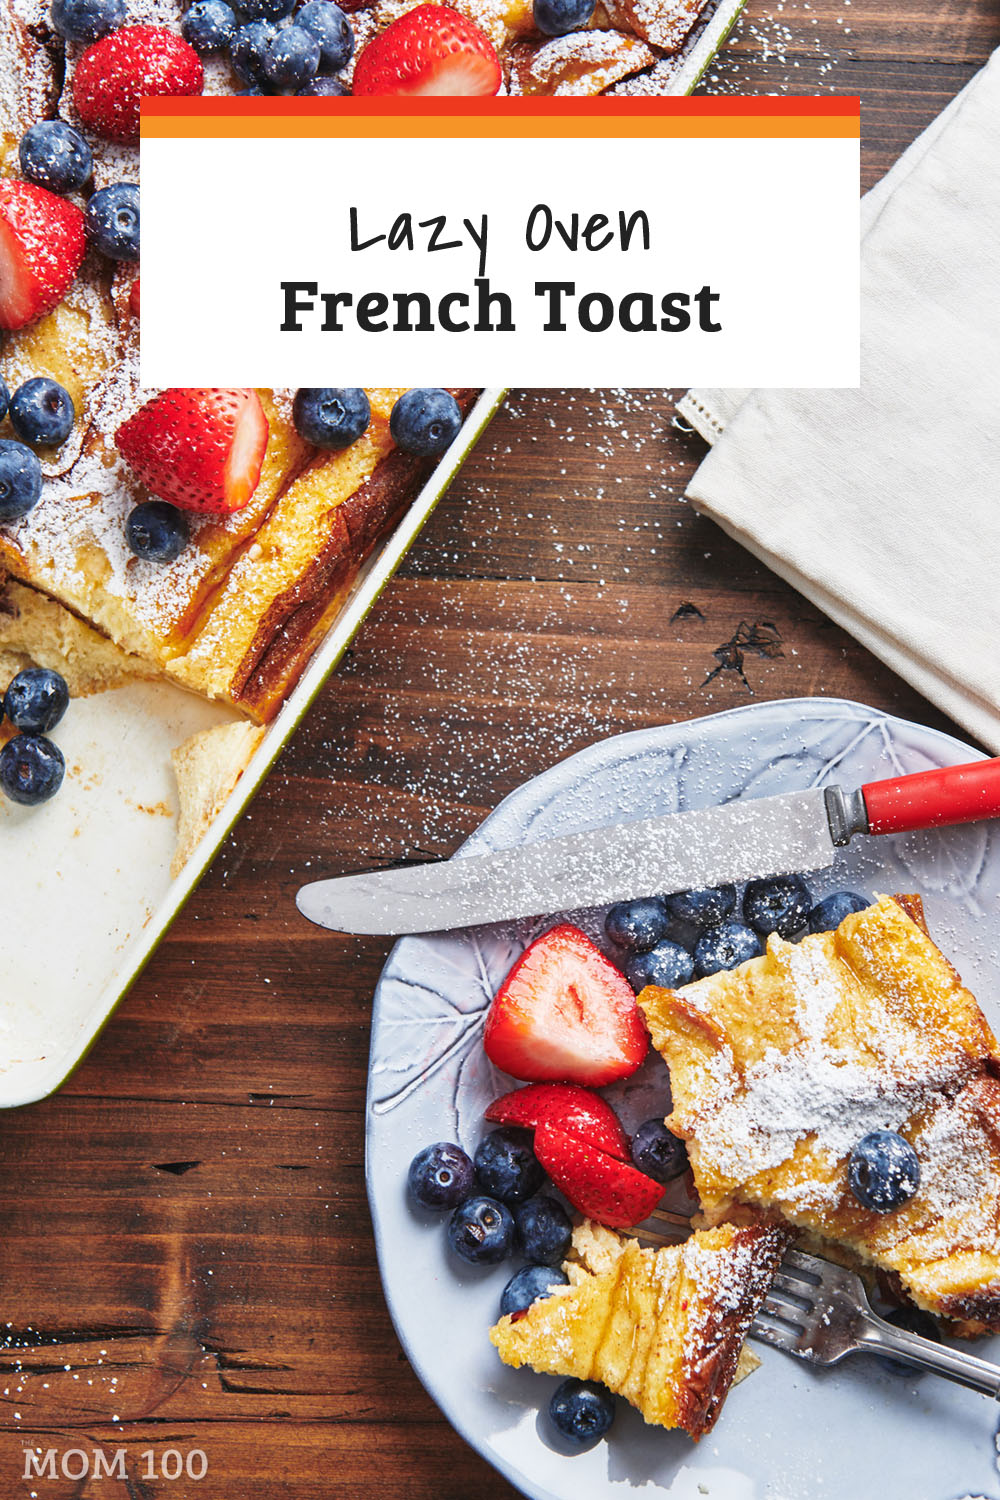 Lazy Oven French Toast / This make ahead baked French Toast recipe is the perfect brunch dish for a weekend because everything can be assembled the night before and baked in the morning. #breakfast #brunch #frenchtoast #makeahead